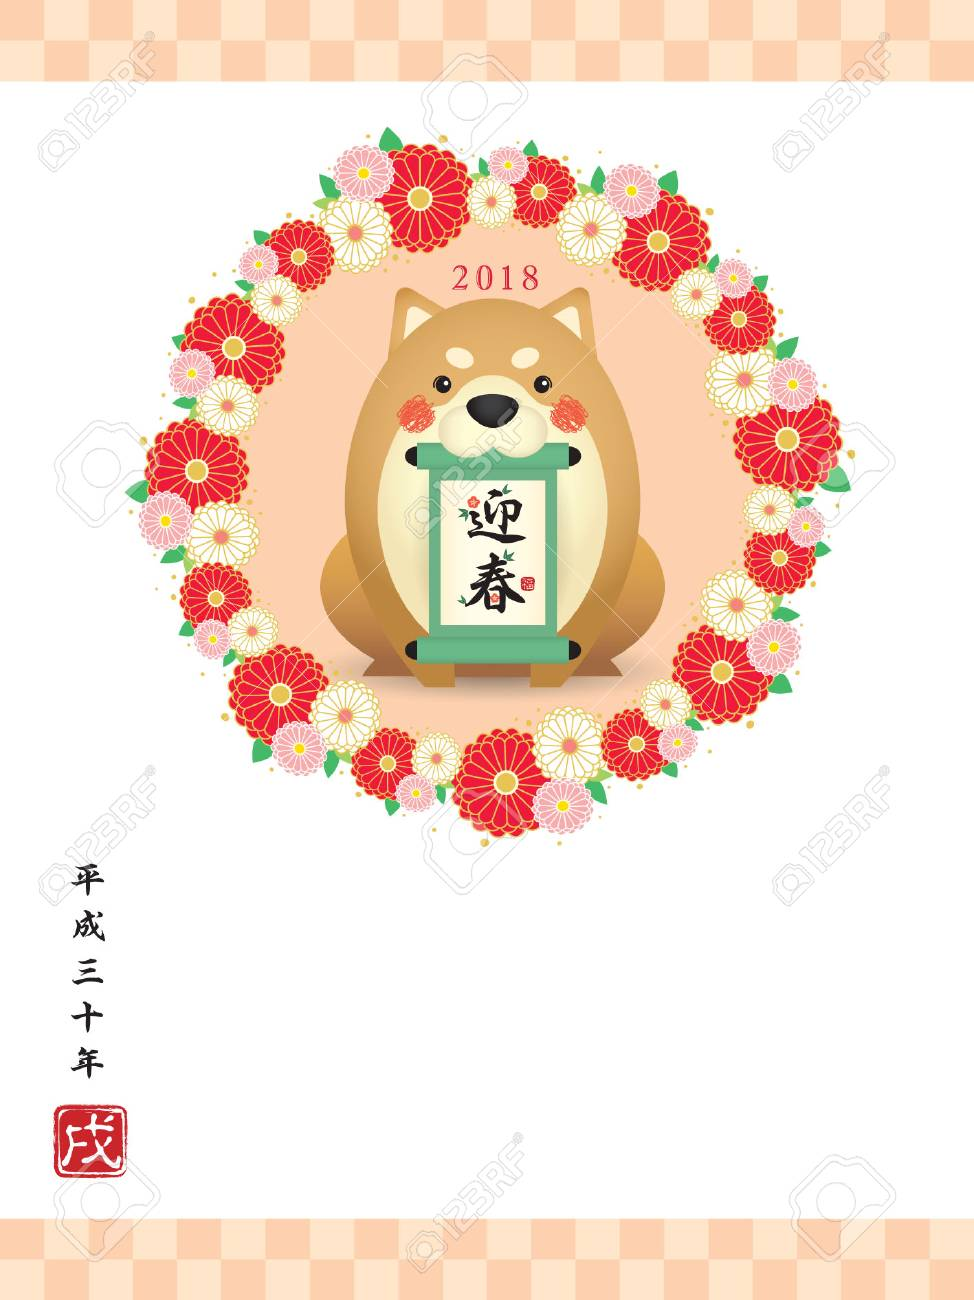 vector year of dog 2018 japanese new year card cute cartoon shiba dog with scroll and floral wreath translation scroll welcome spring